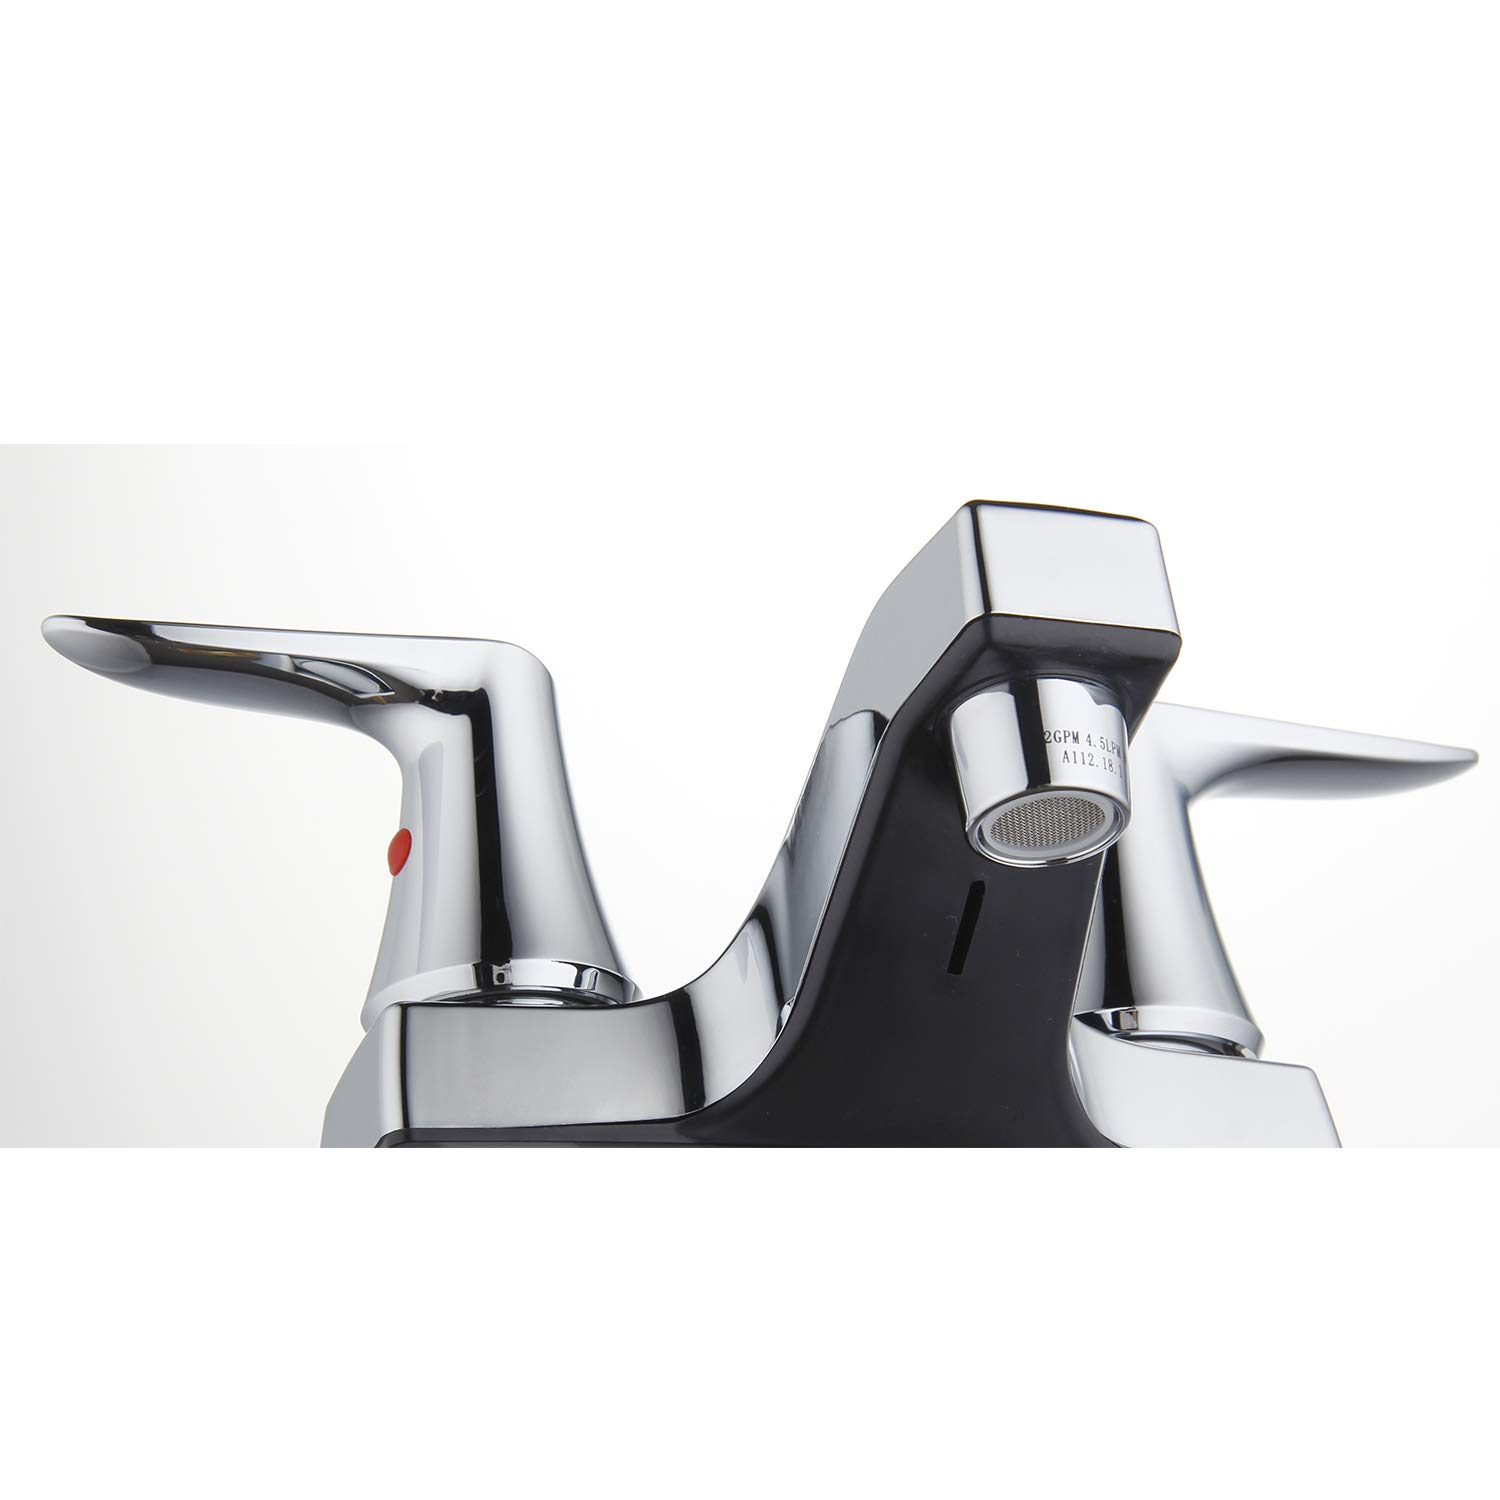 Innova PF6020-CH-WP Rhondonite Two Handle Non-Metallic Bathroom Faucet with Easy Install QuickNut and ClogFREE PopUp Drain Chrome